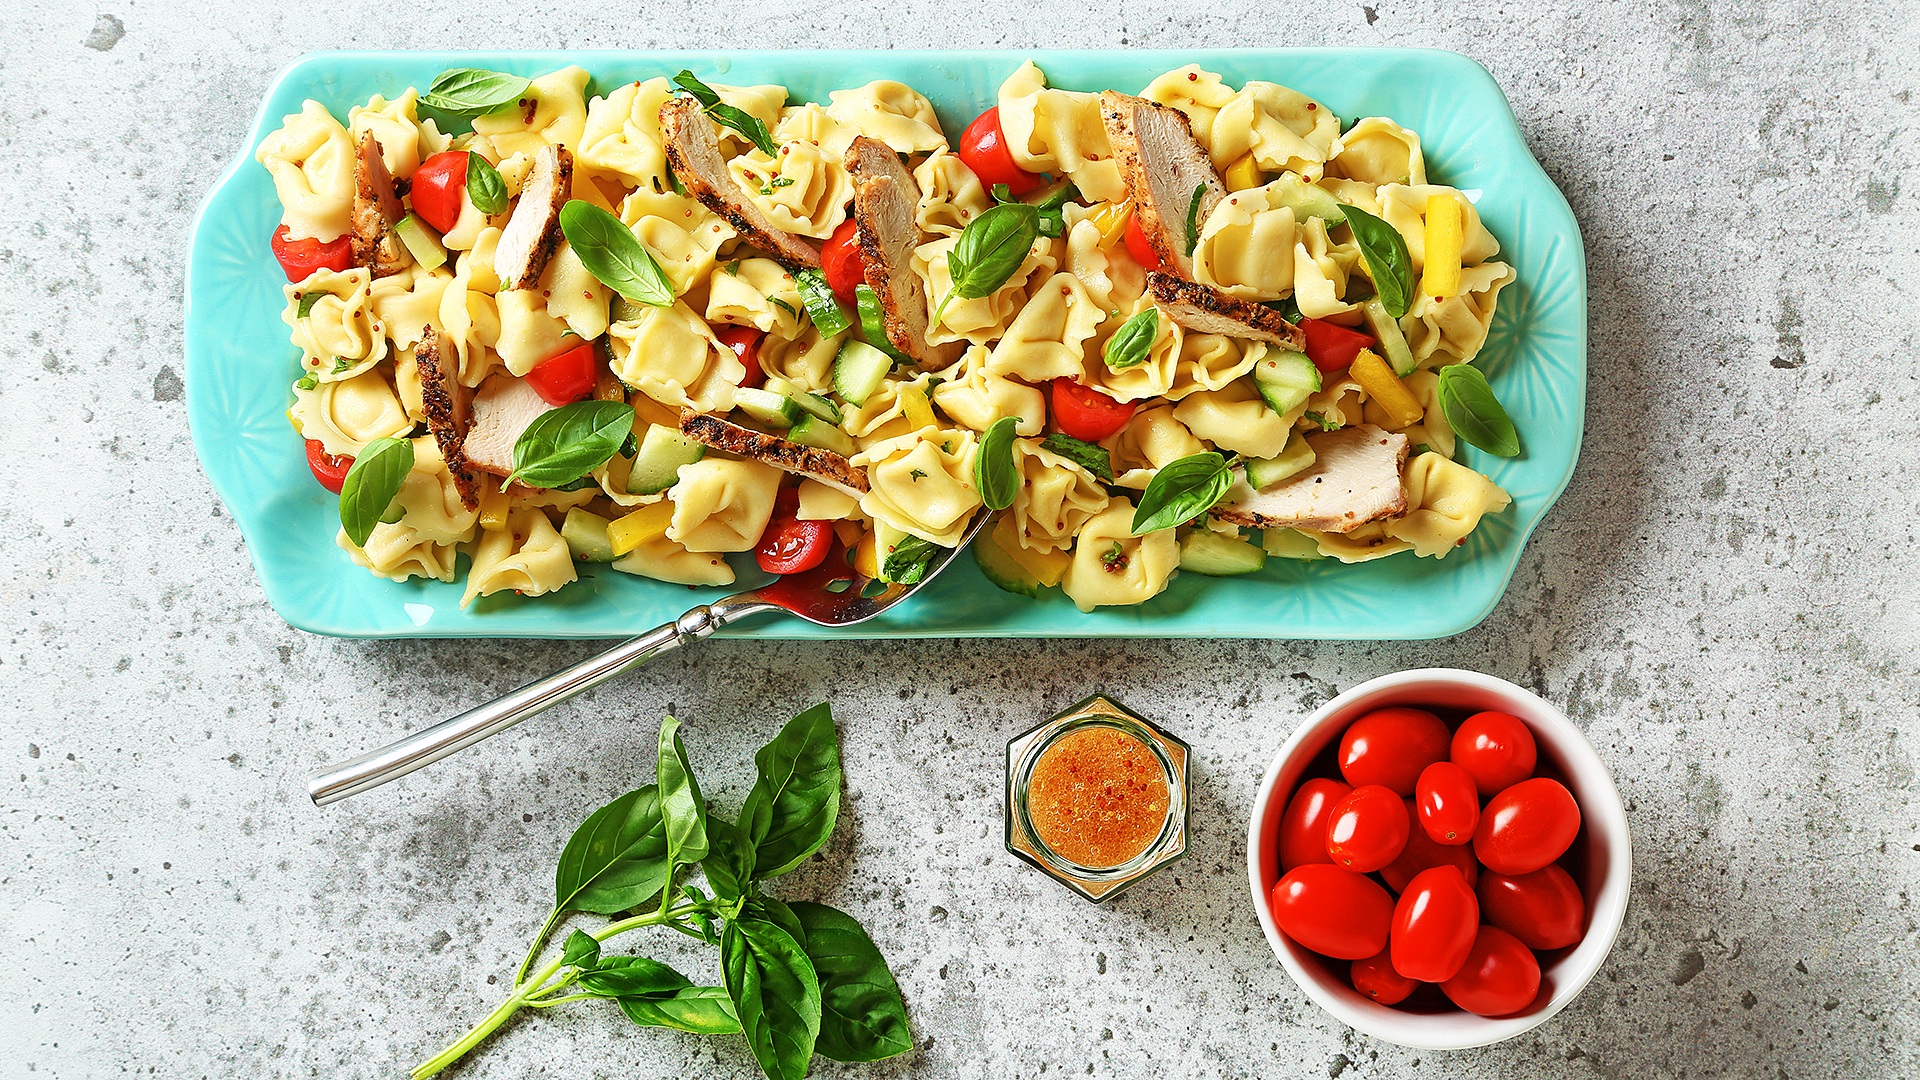 Chicken tortellini pasta salad on a blue serving platter with bowl of cherry tomatoes, dressing and a basil sprig on the side.